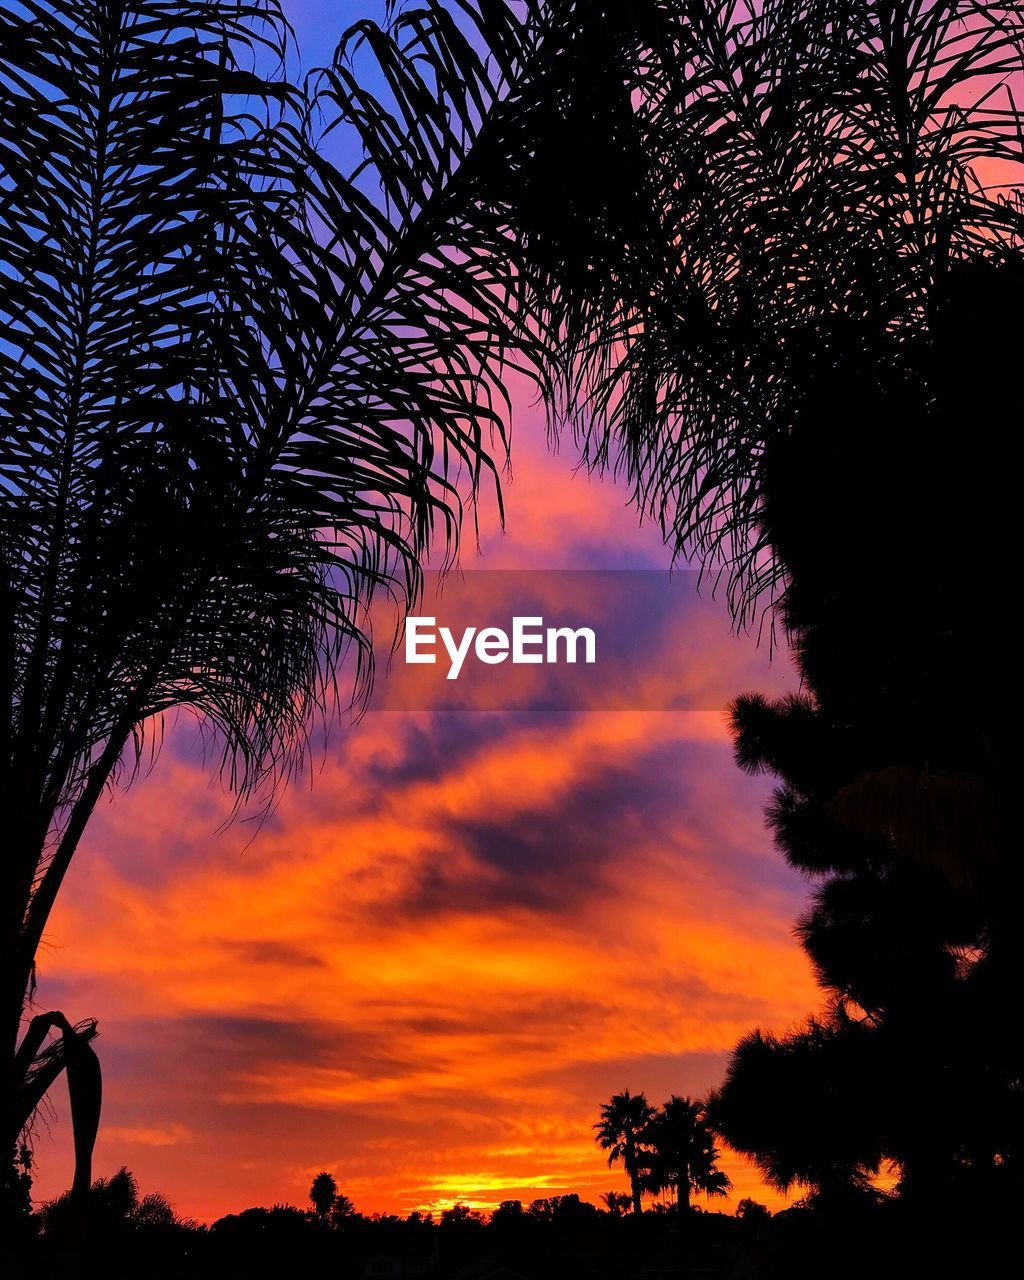 tree, sunset, silhouette, palm tree, sky, beauty in nature, orange color, nature, growth, scenics, tree trunk, low angle view, tranquility, outdoors, no people